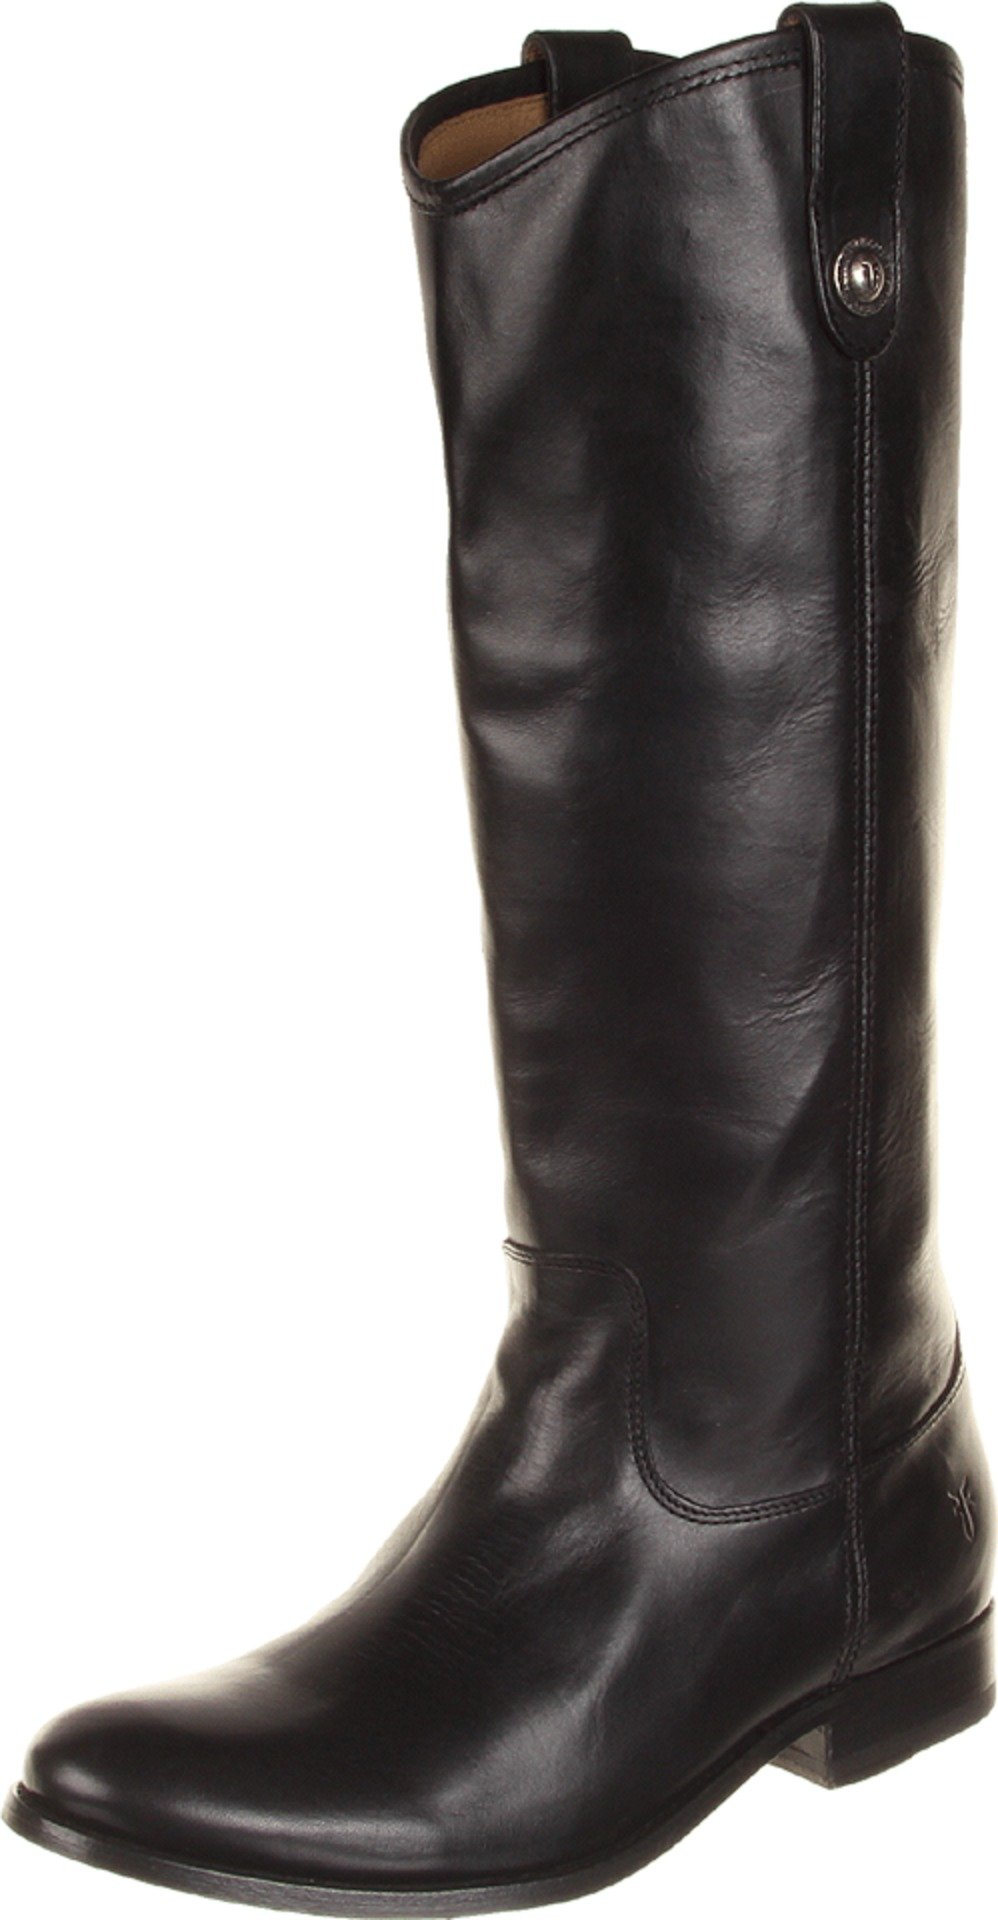 FRYE Women's Melissa Button Boot, Black Wide Calf Smooth Vintage Leather, 8 M US